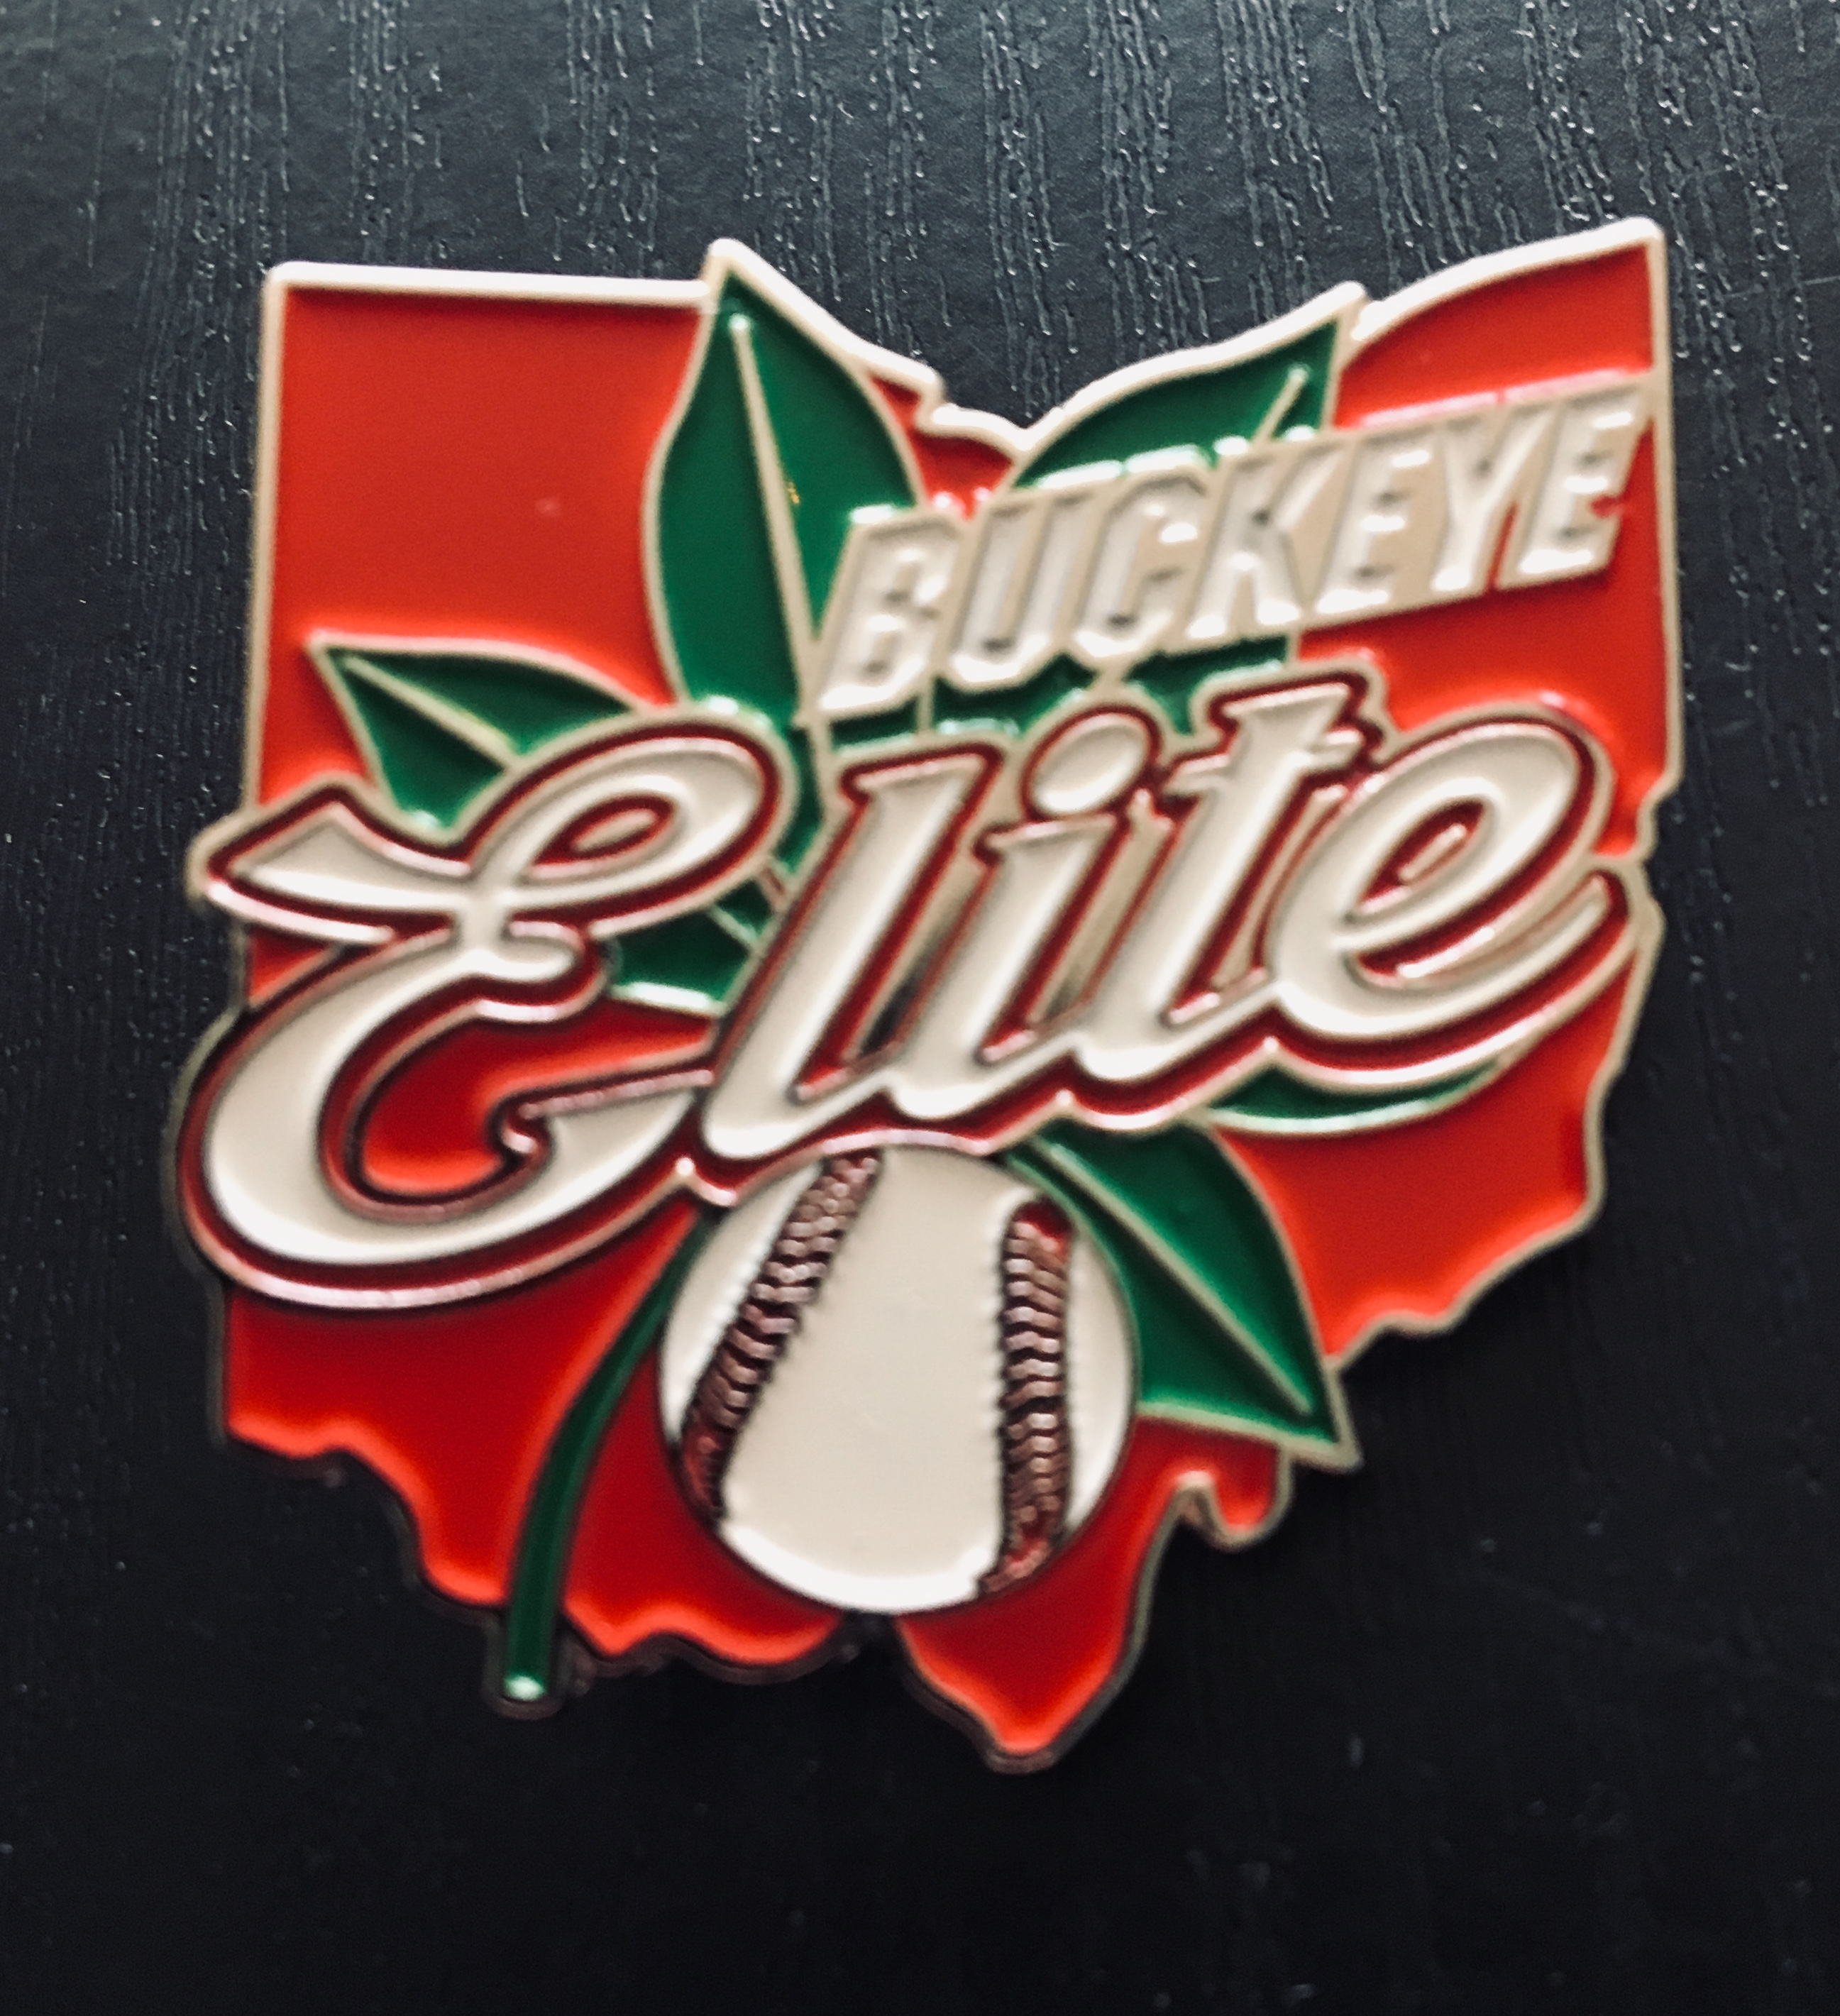 Buckeye elite pin